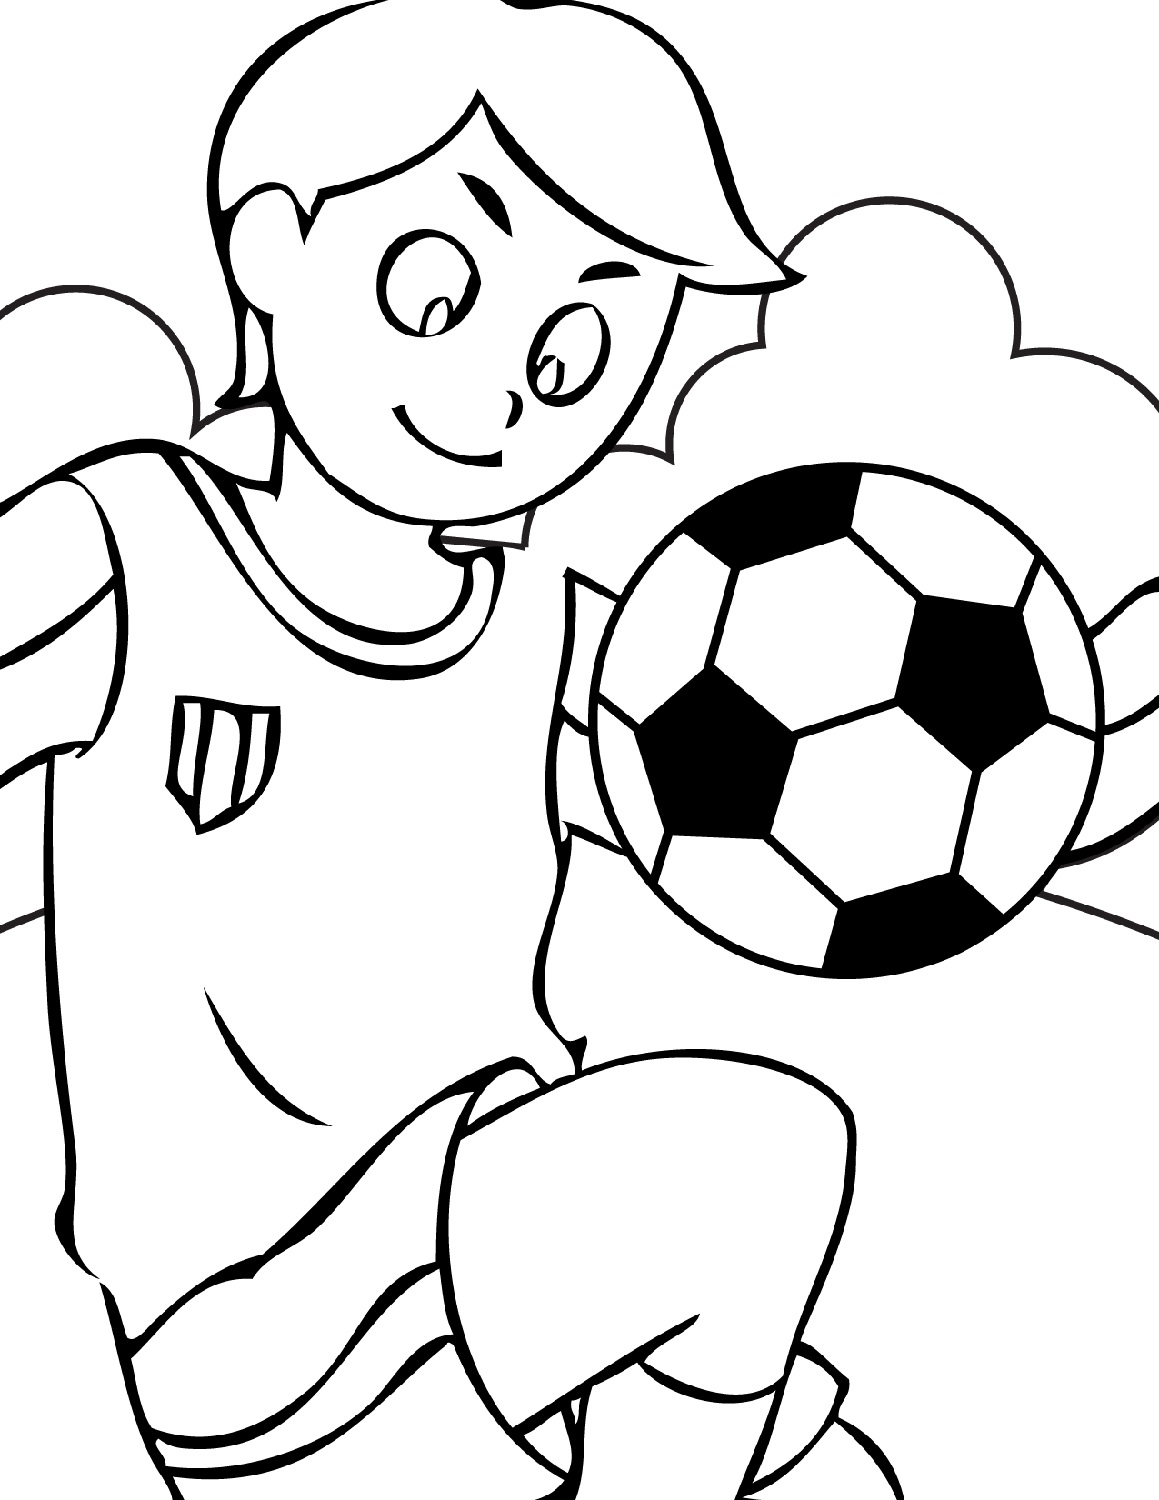 coloring page soccer soccer coloring pages kidsuki coloring soccer page